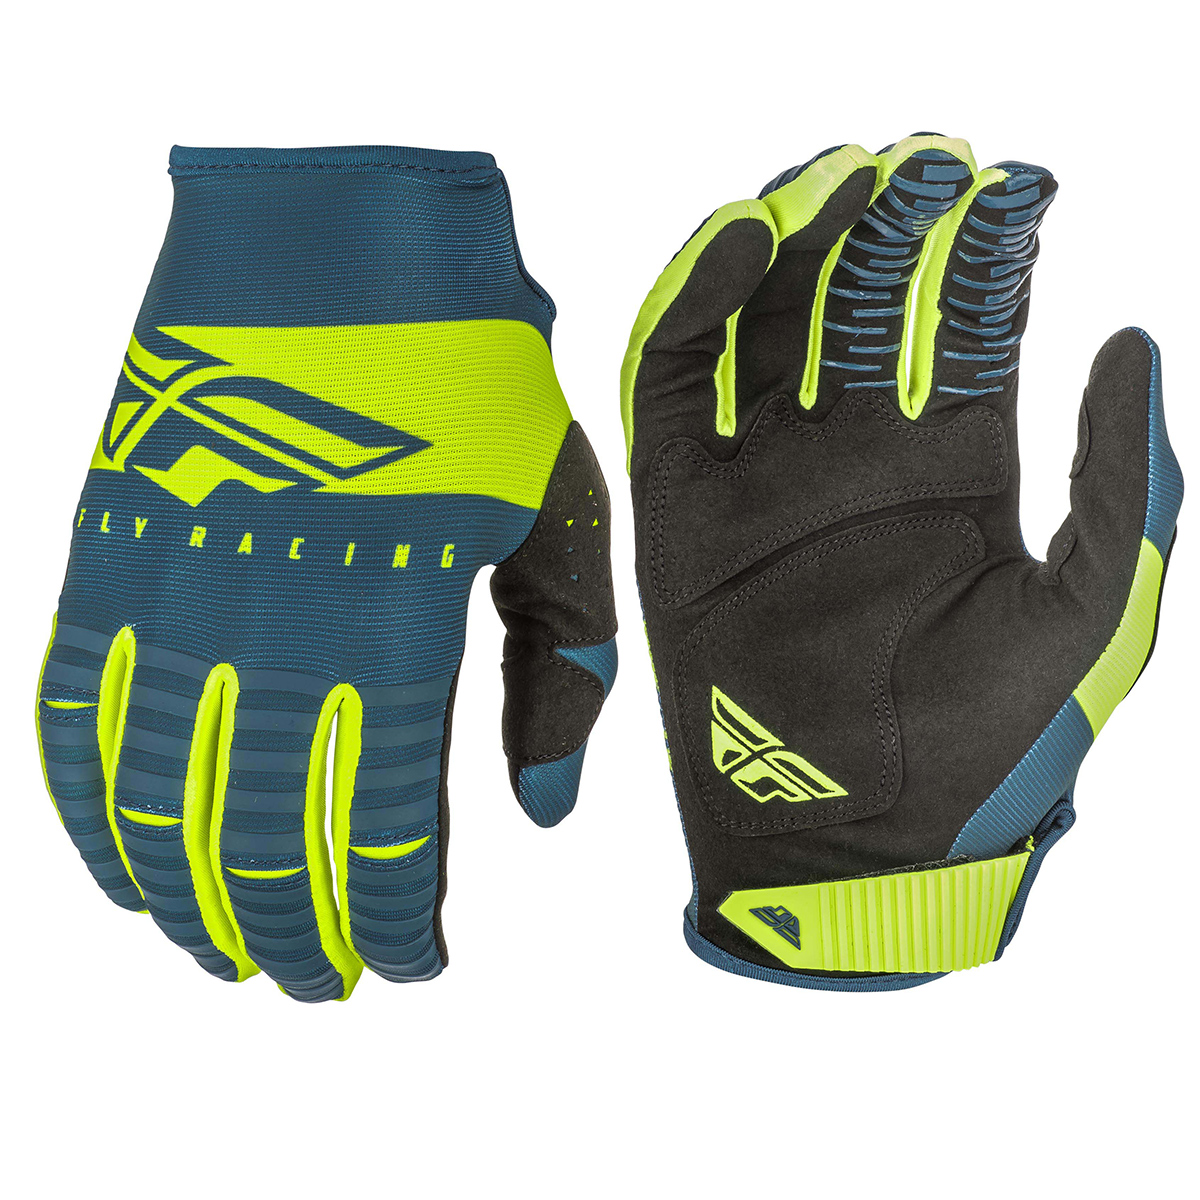 FLY KINETIC SHIELD 2019 GLOVES